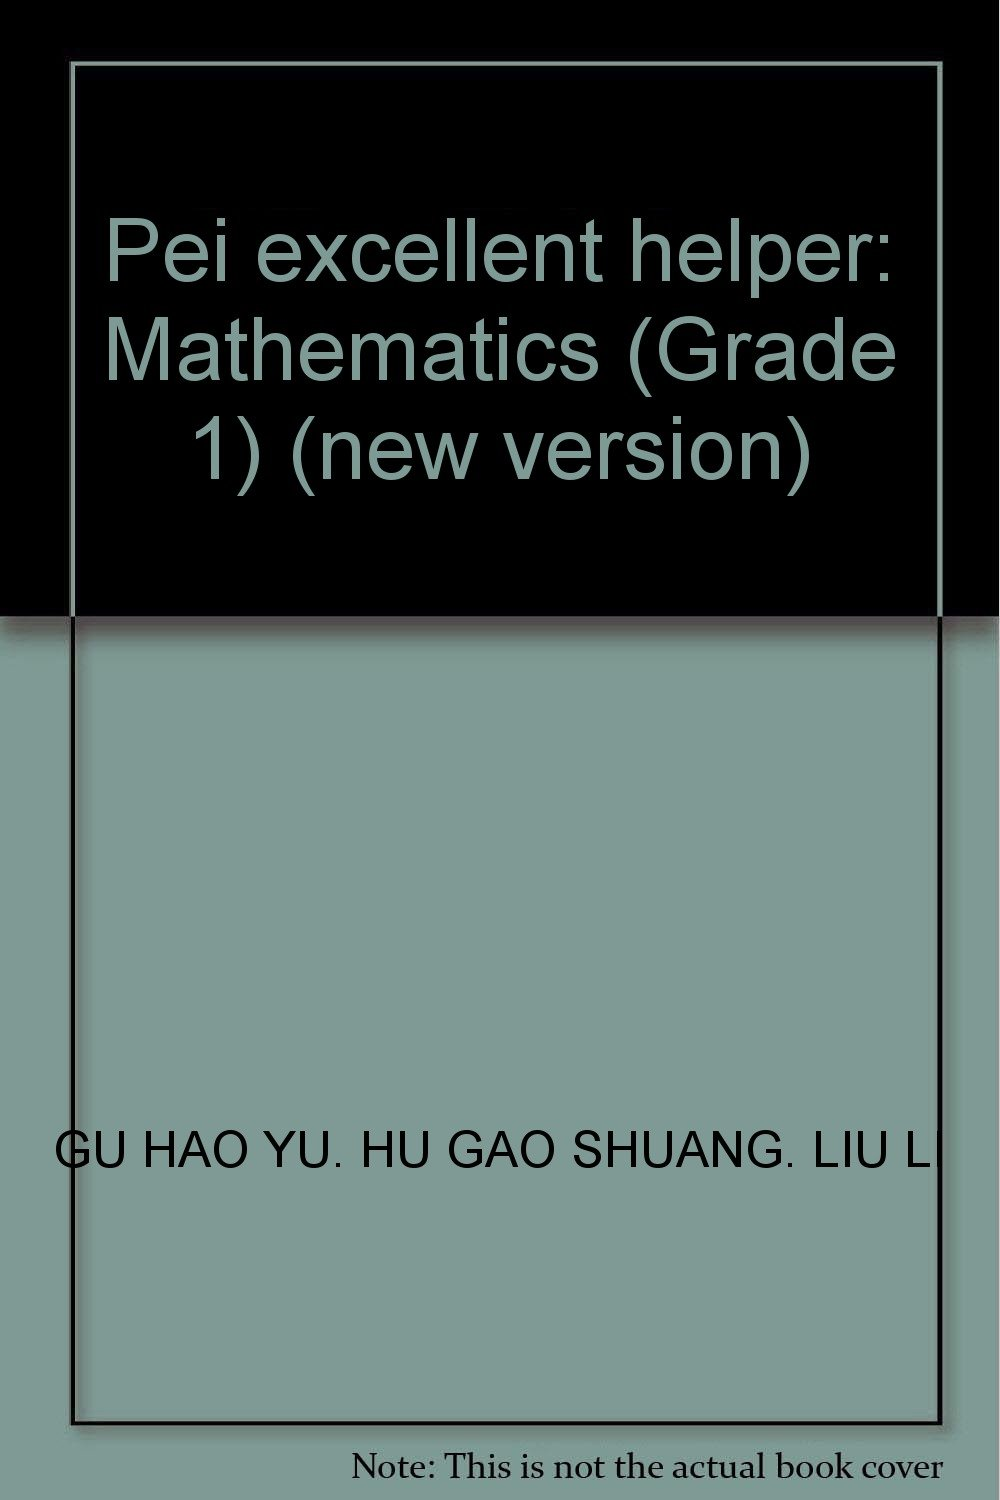 pei excellent helper mathematics grade new version gu hao pei excellent helper mathematics grade 1 new version gu hao yu hu gao shuang liu li 9787540310264 com books